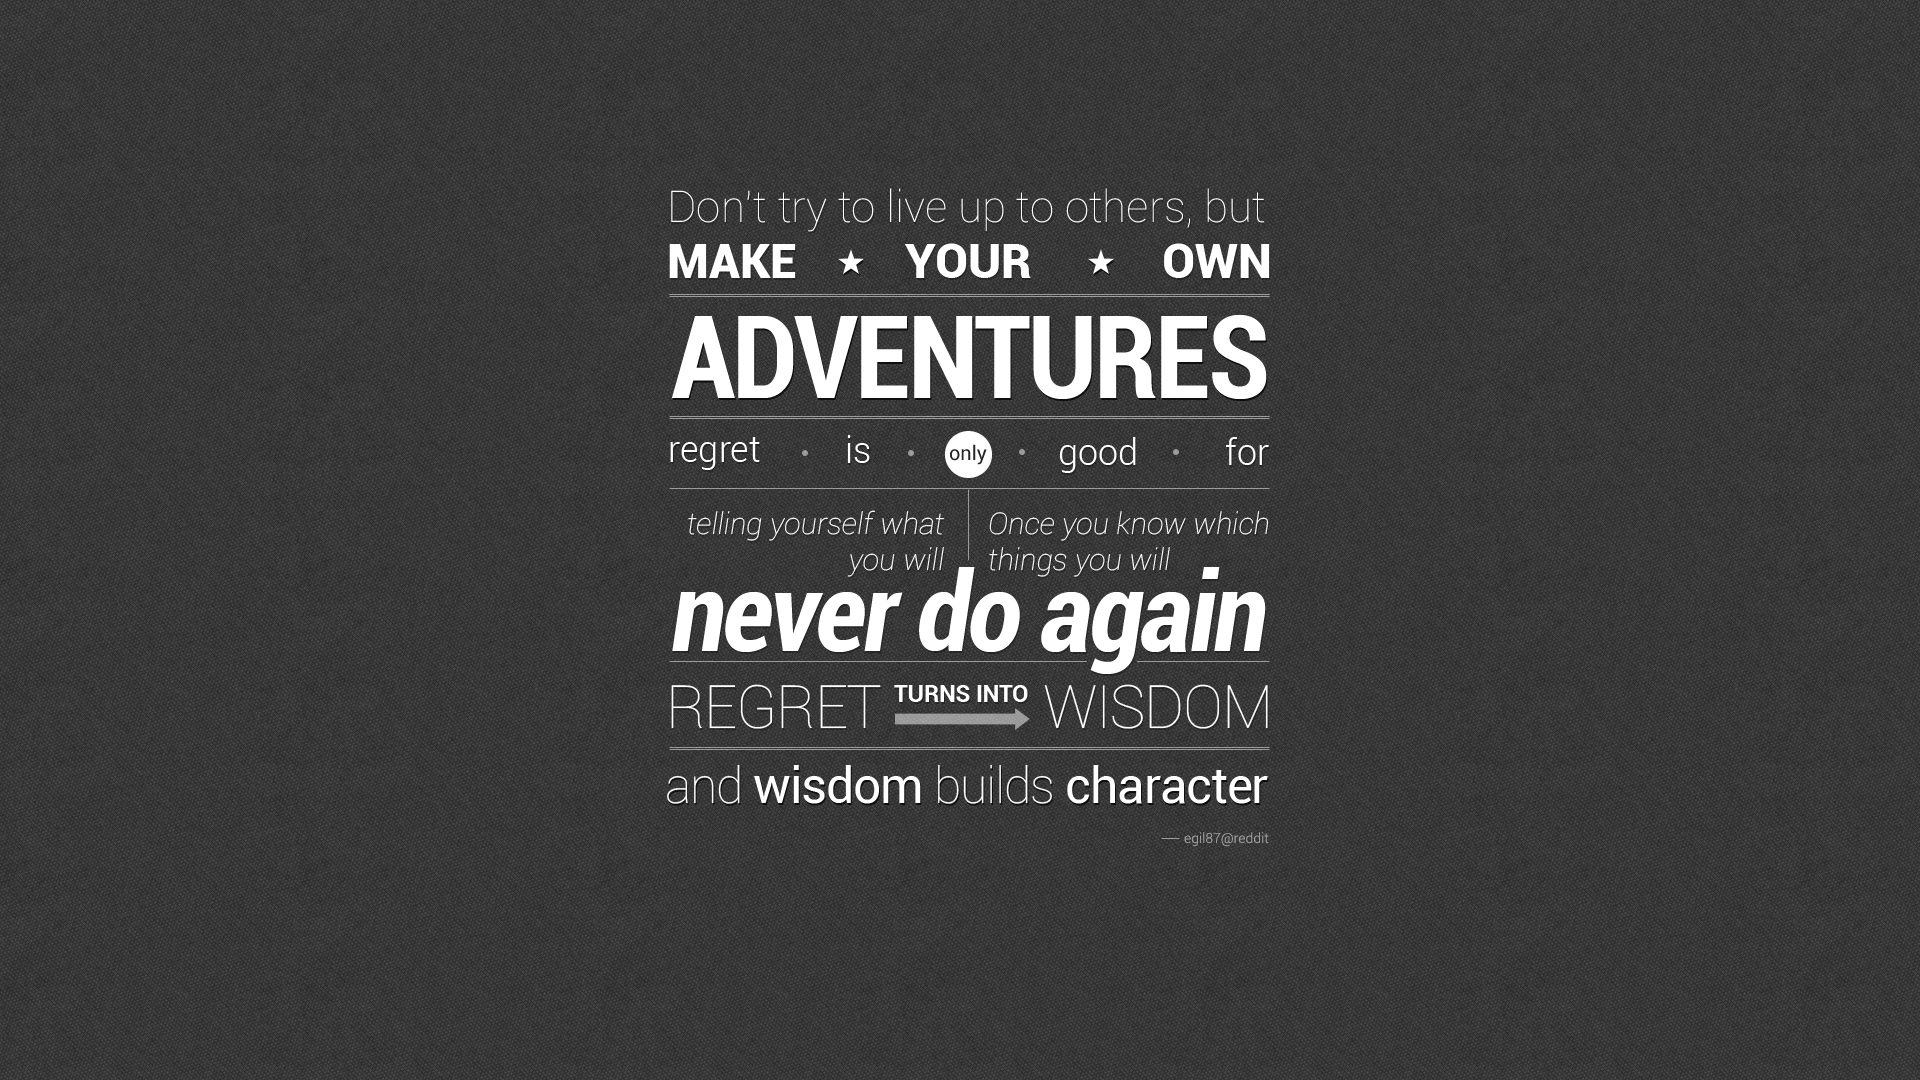 Great Inspirational Quotes 115 Best Motivational Wallpaper Examples With Inspiring Quotes